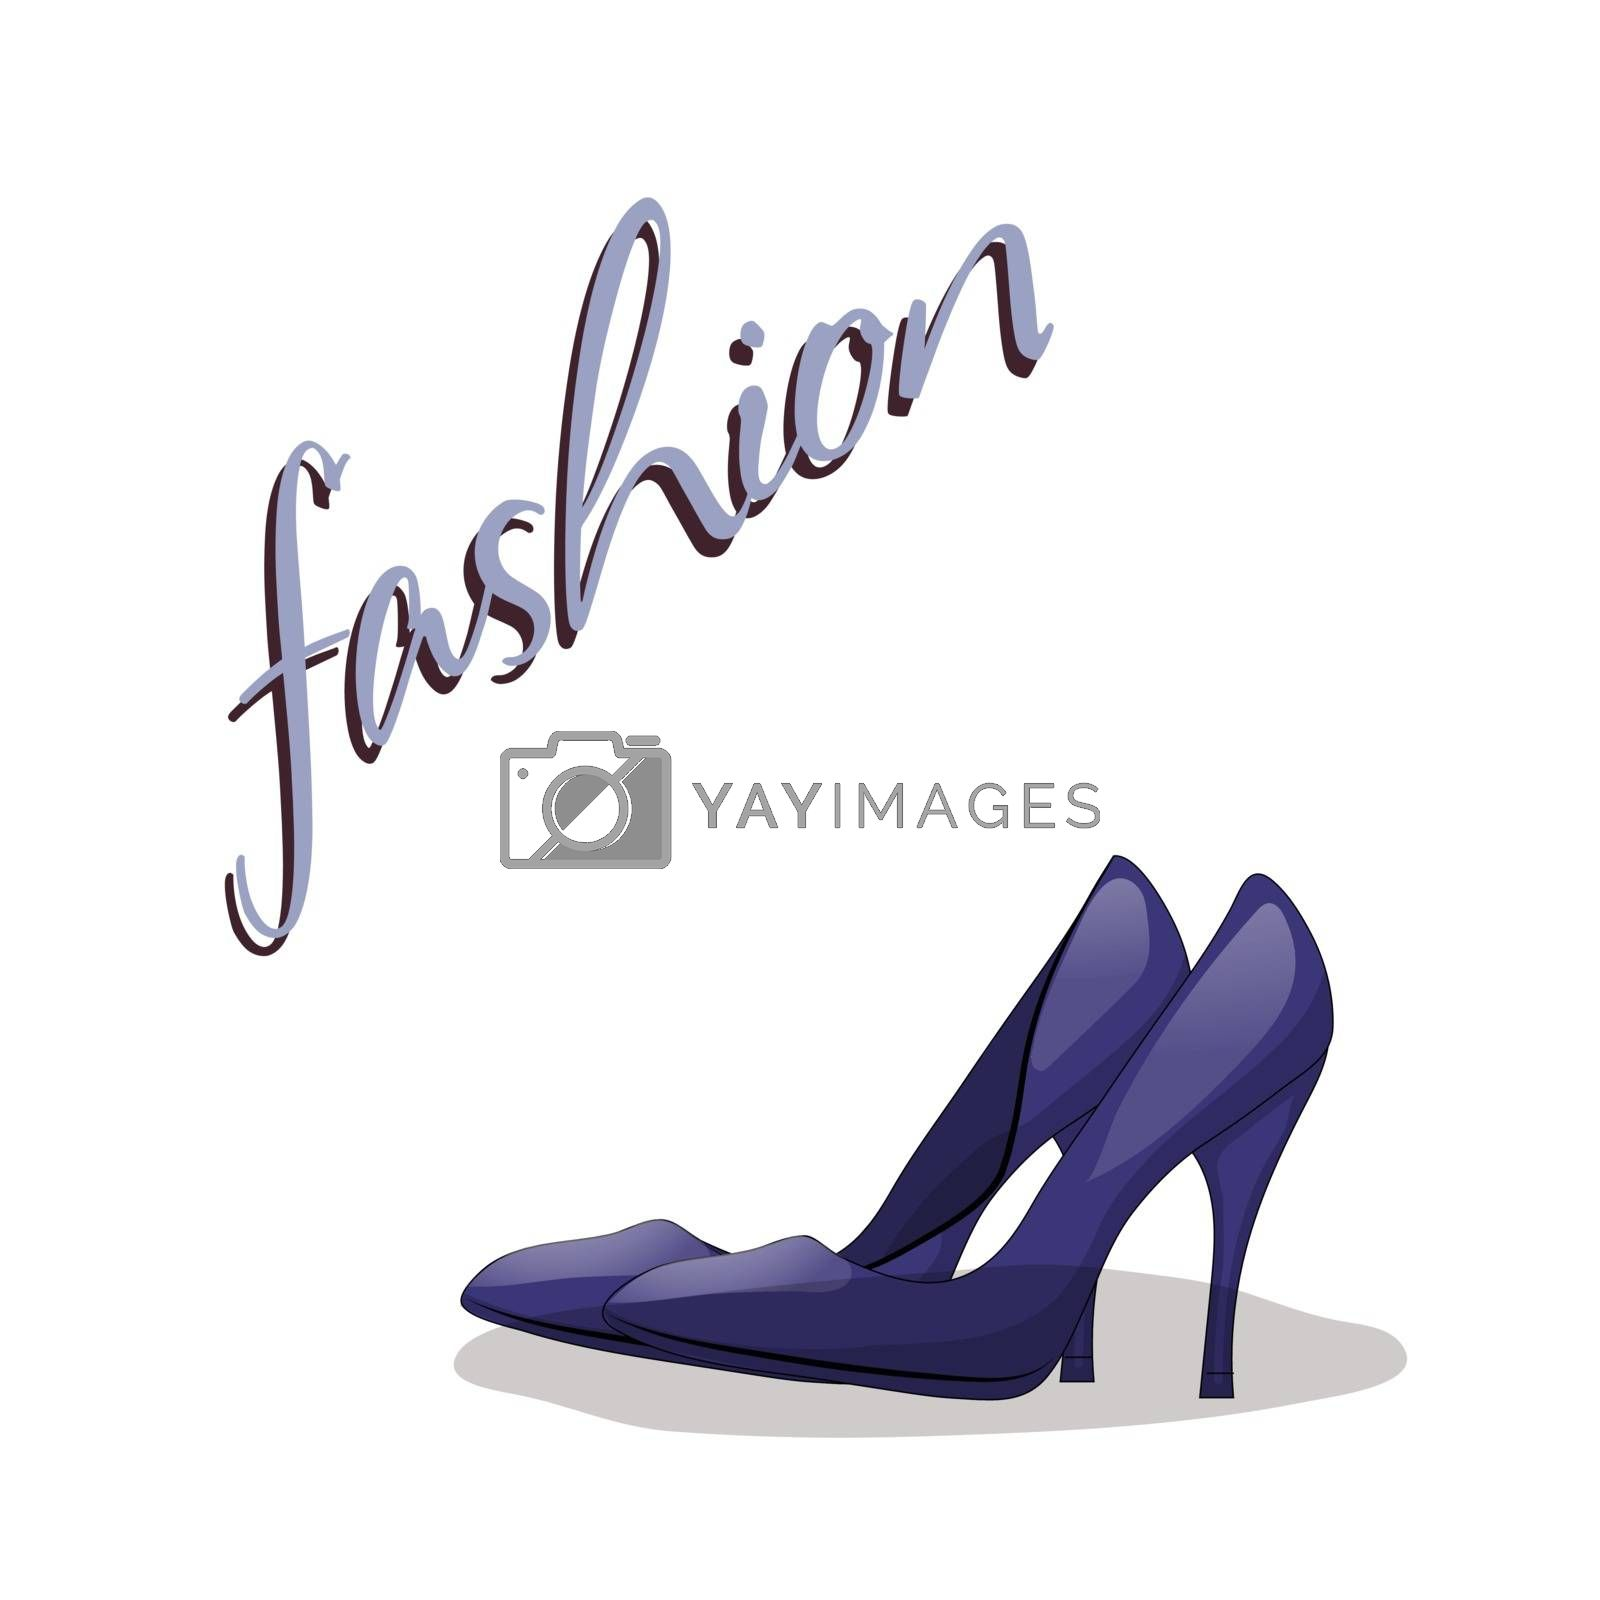 Fashionable woman s shoes blue color and fashion handwritten sing. Vector design elements isolated on white